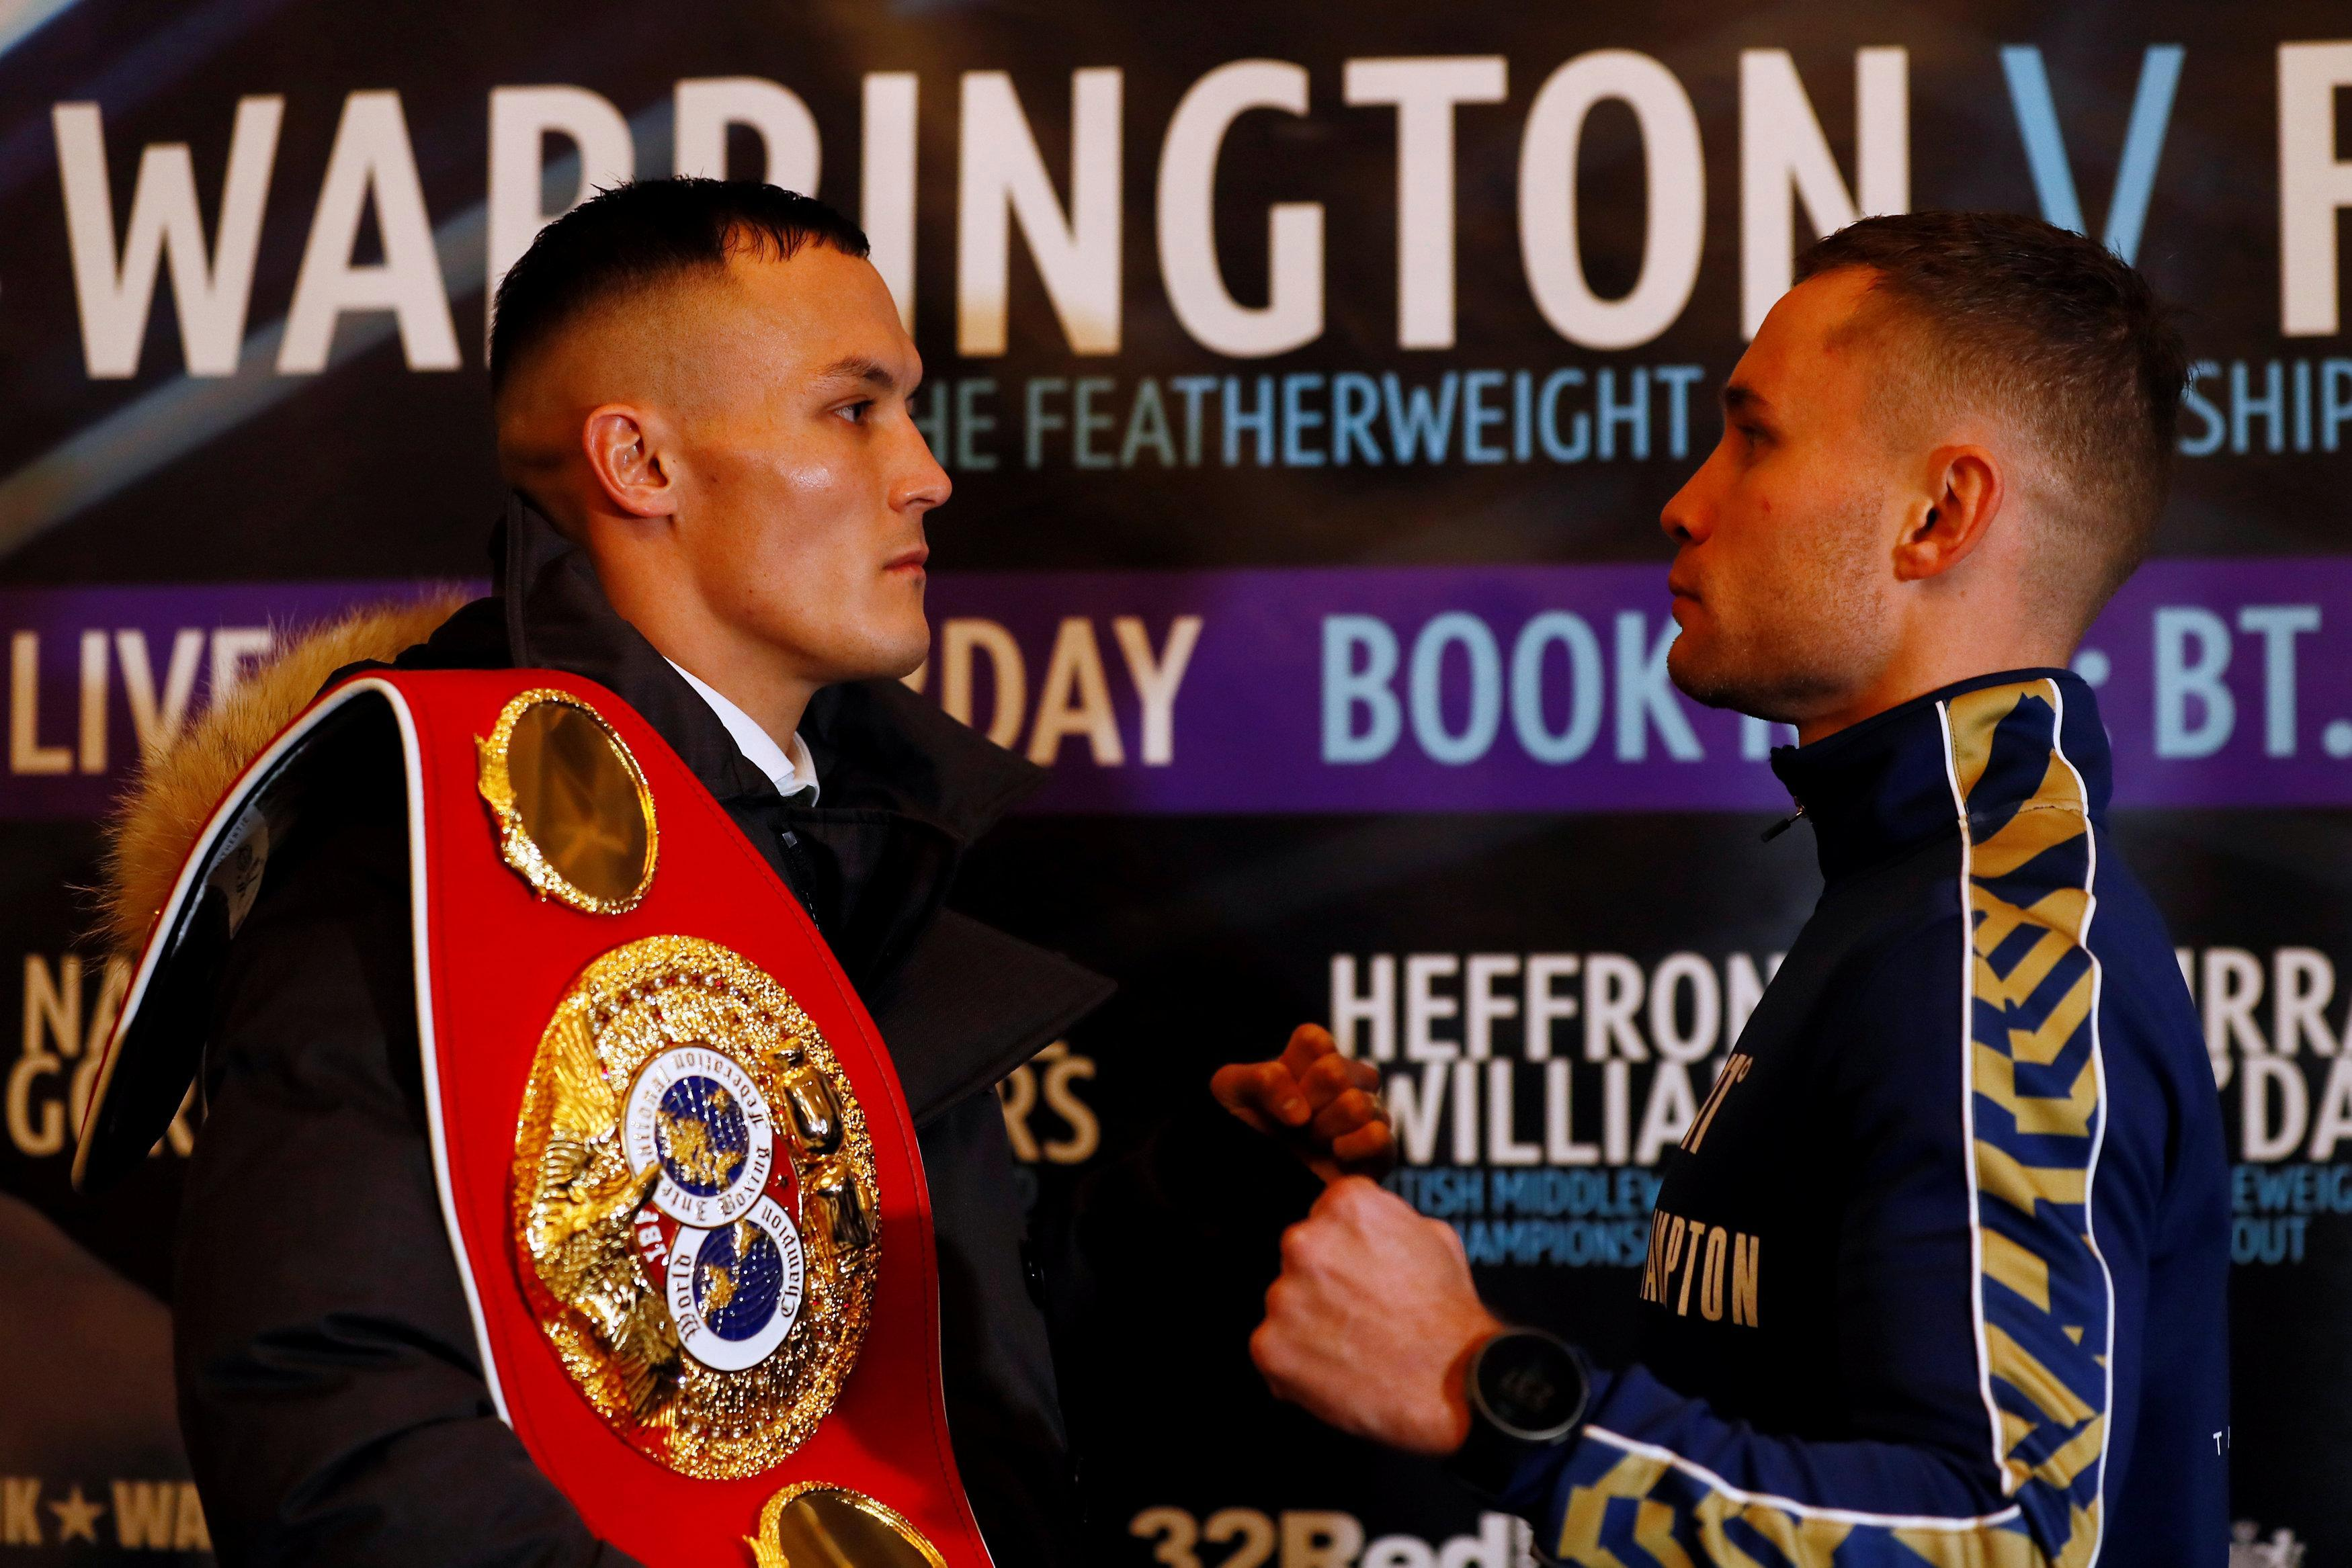 Warrington vs Frampton live stream: How to watch this IBF featherweight title battle